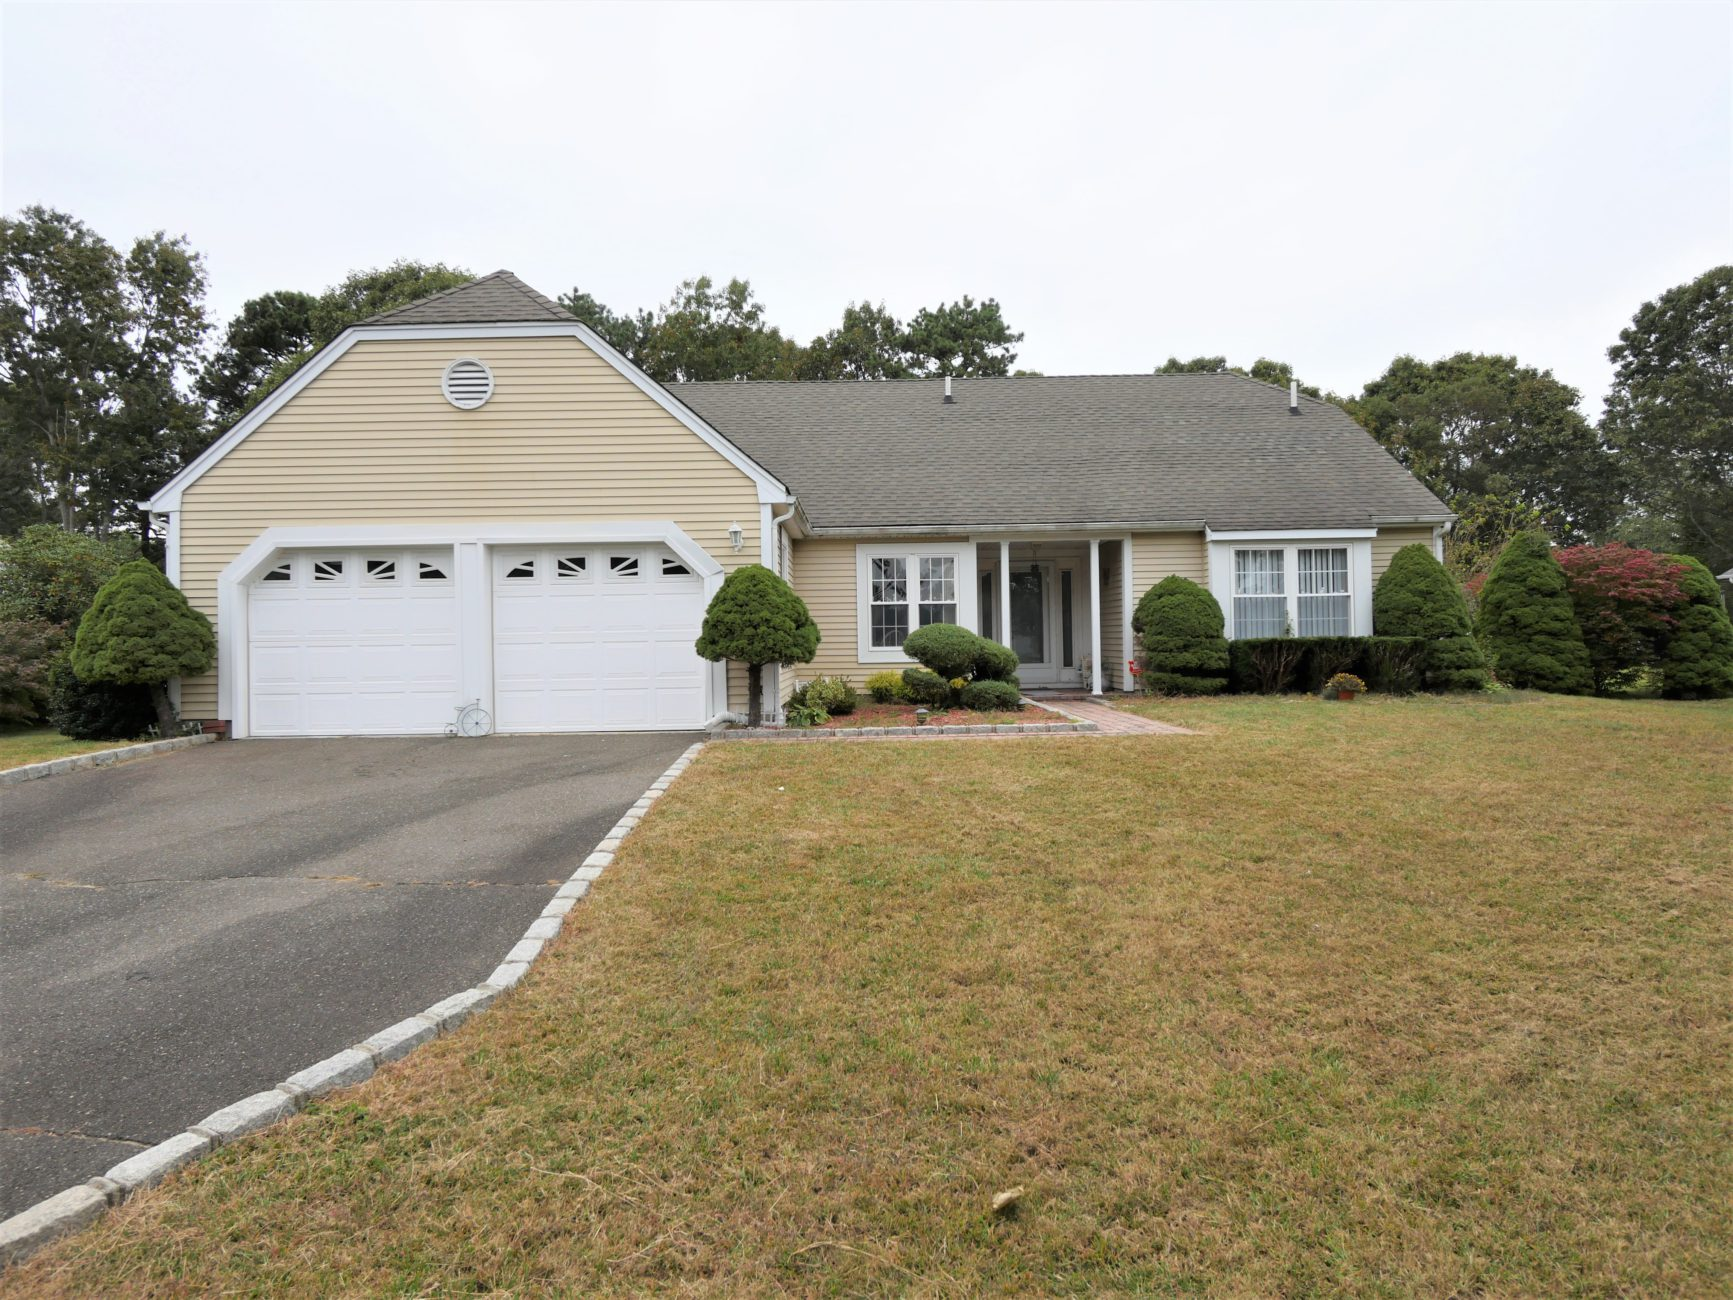 32 Colby Drive. Coram, NY 11727